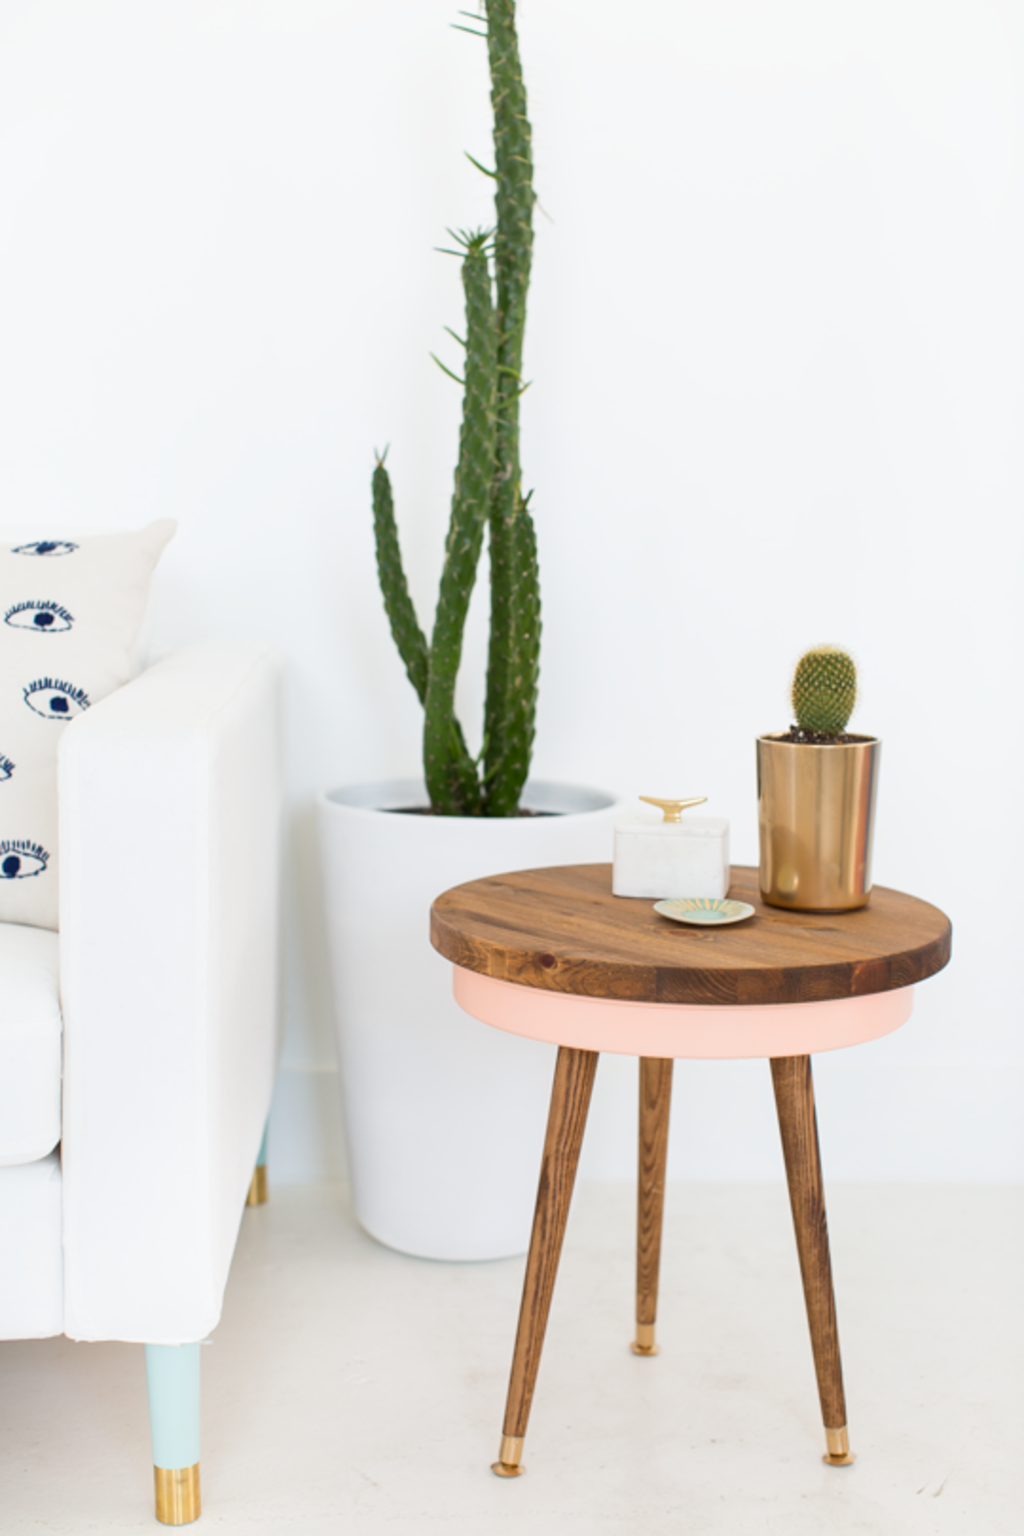 Bring on Spring: 9 Cute & Cheerful Modern DIY Projects